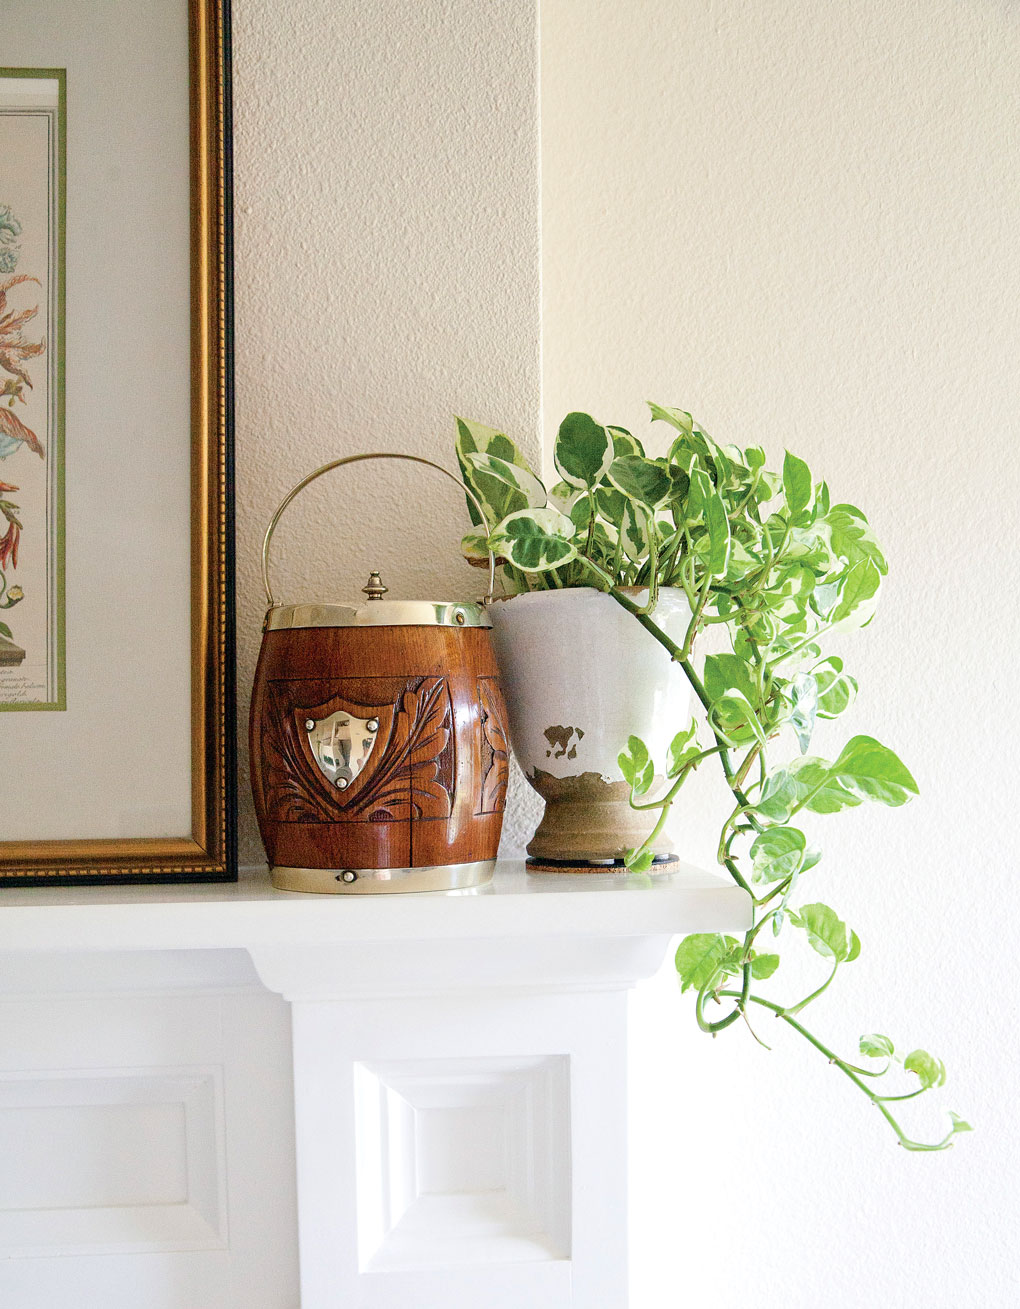 Wooden biscuit barrel perched on a mantel next to a potted indoor plant.